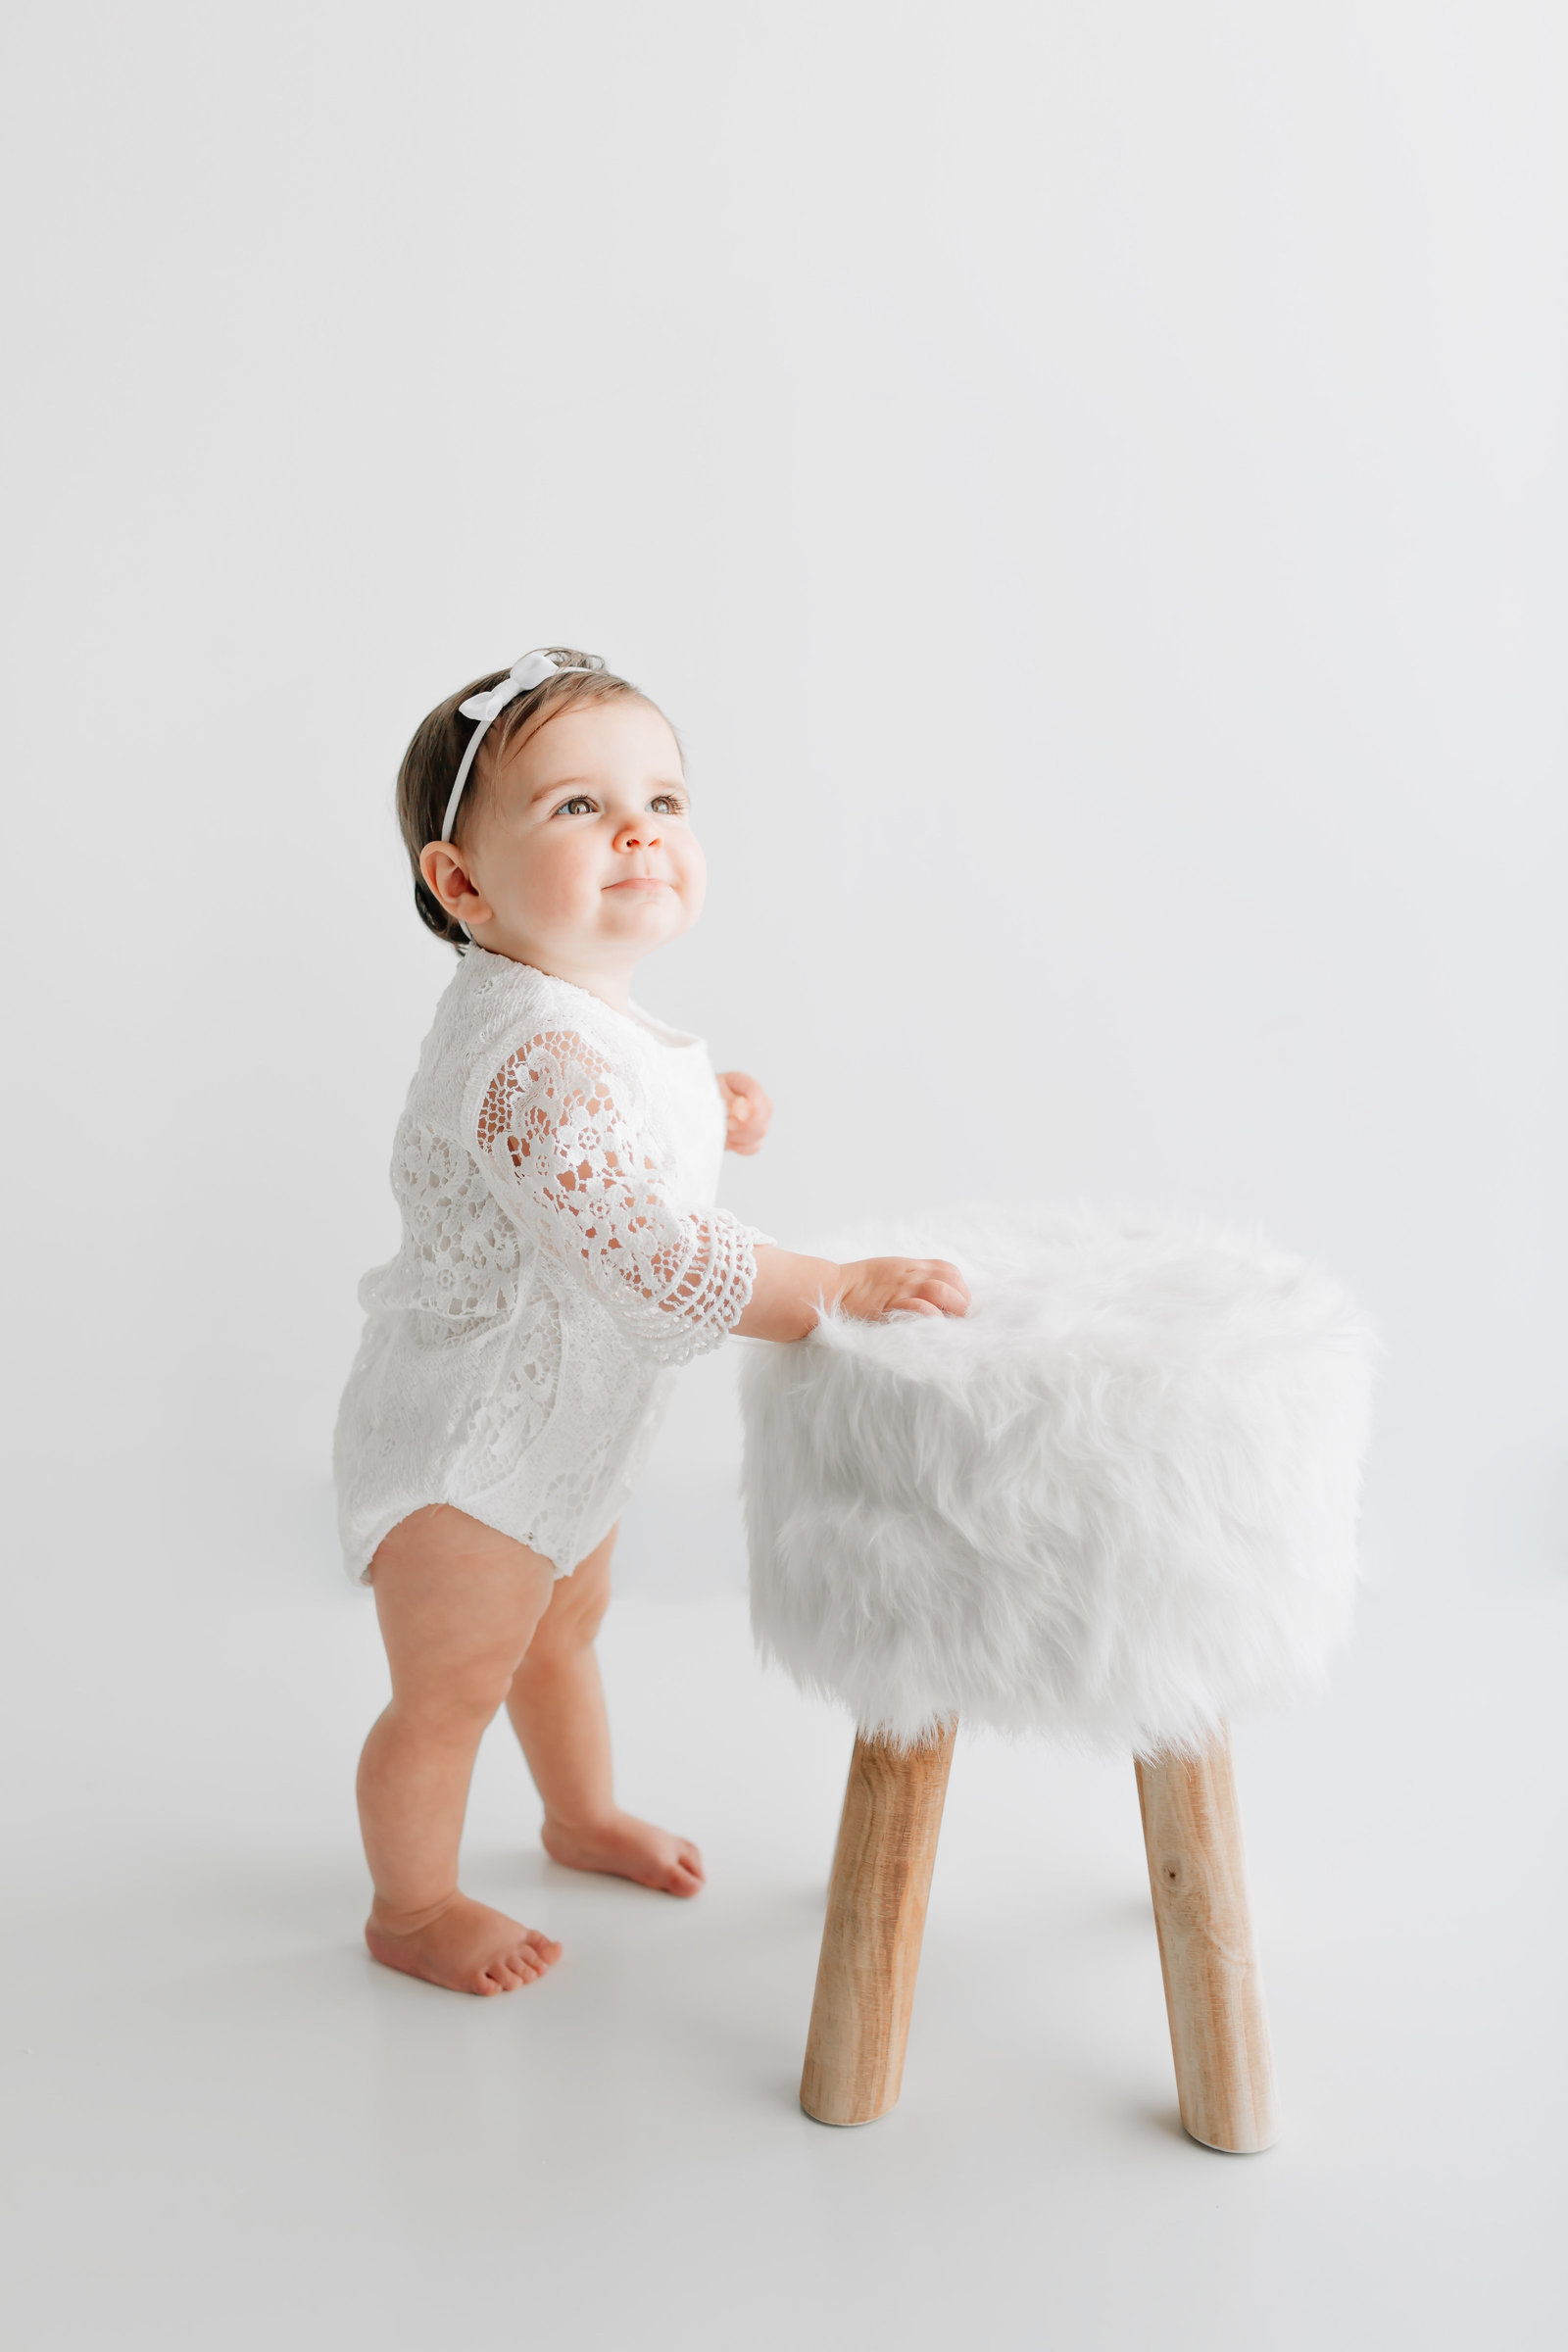 St_Louis_Baby_Photographer_Kelly_Laramore_Photography5